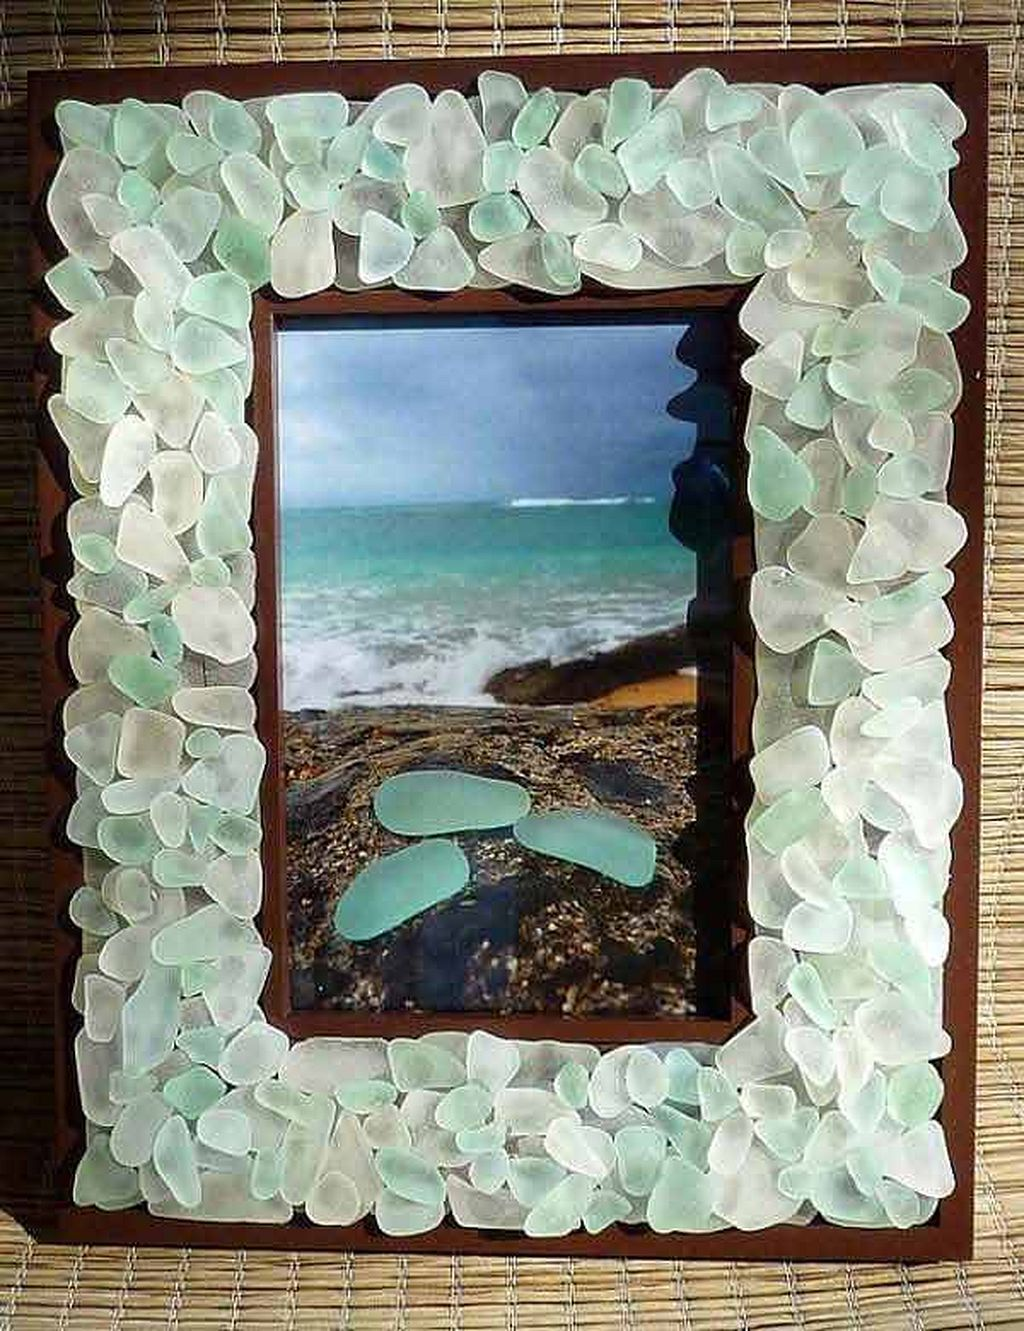 Fancy Diy Home Decor Ideas With Colored Glass And Sea Glass 35 In 2020 Beach Glass Art Sea Glass Crafts Beach Glass Crafts